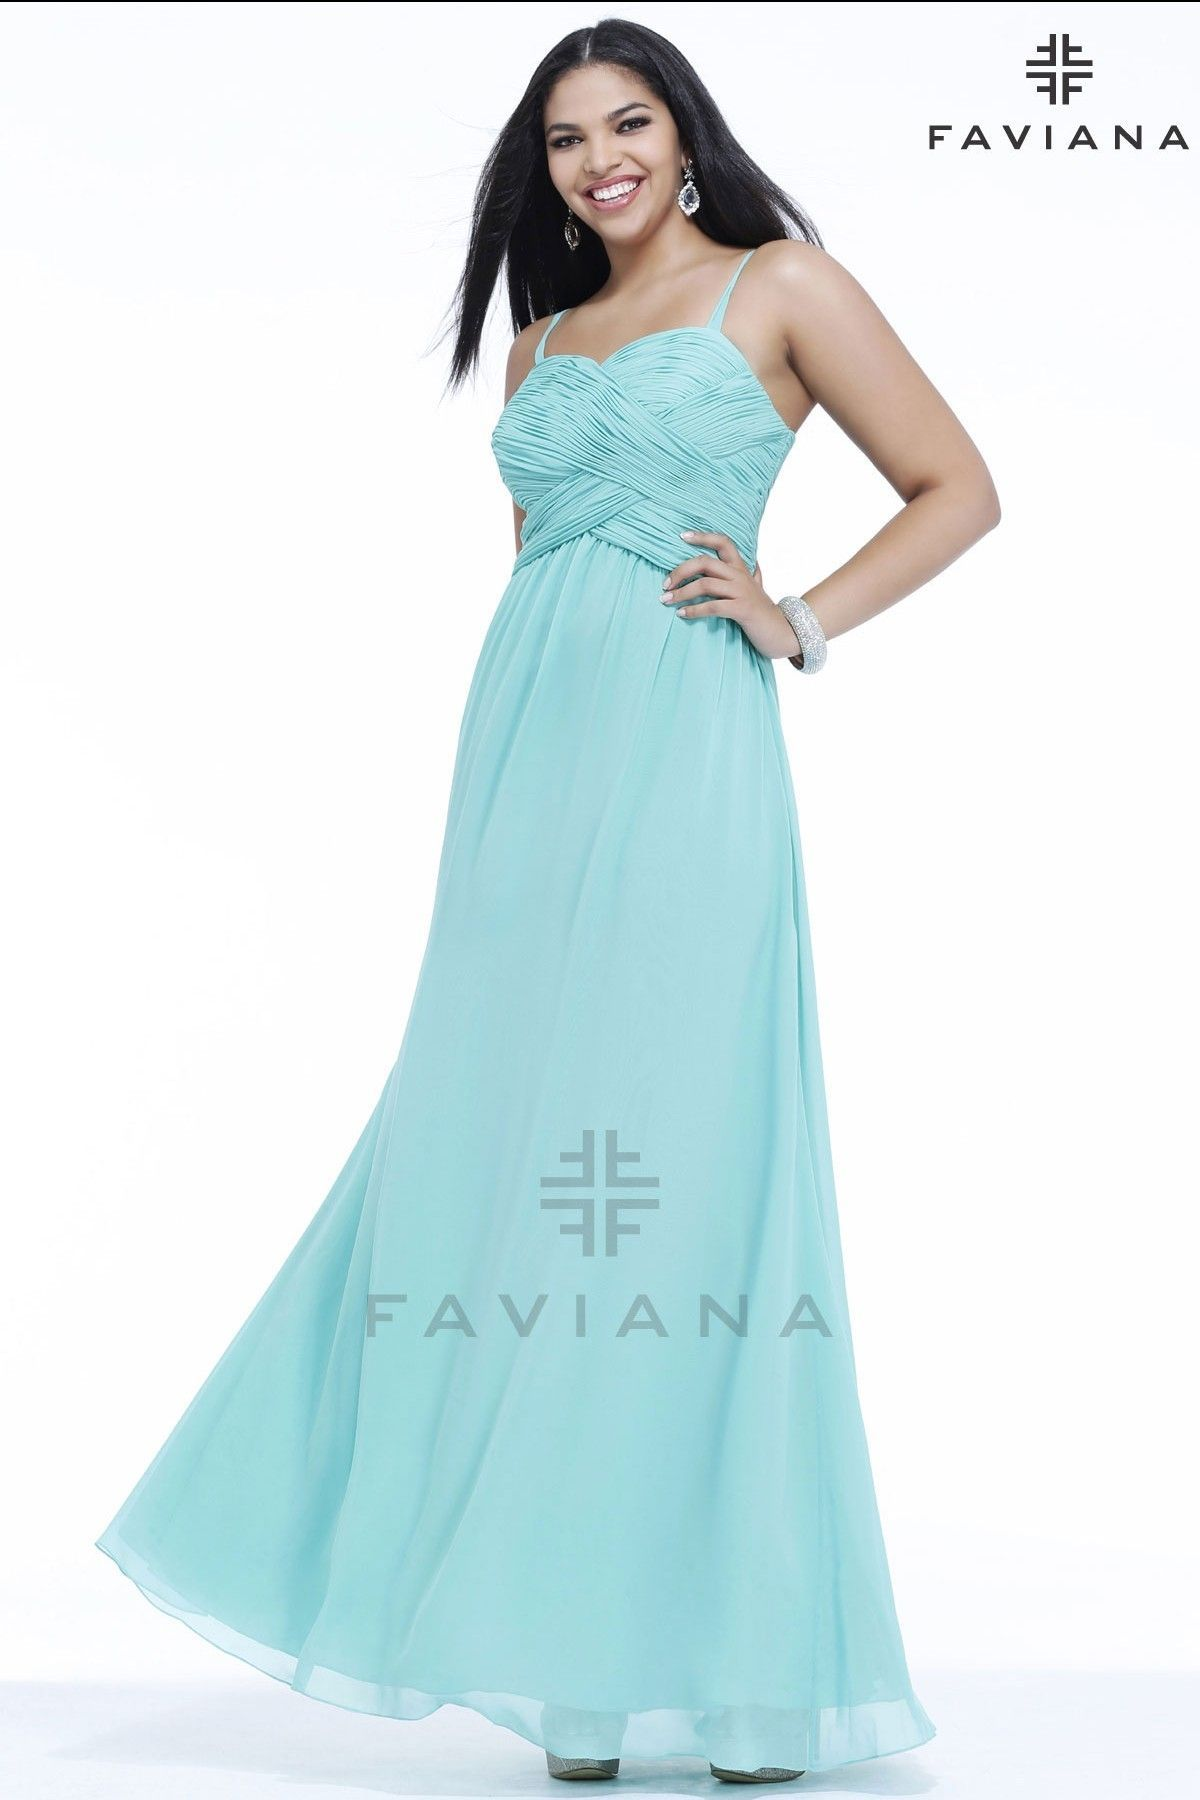 Plus Size Prom Dress with Sweetheart Neckline l Faviana - Wedding ...